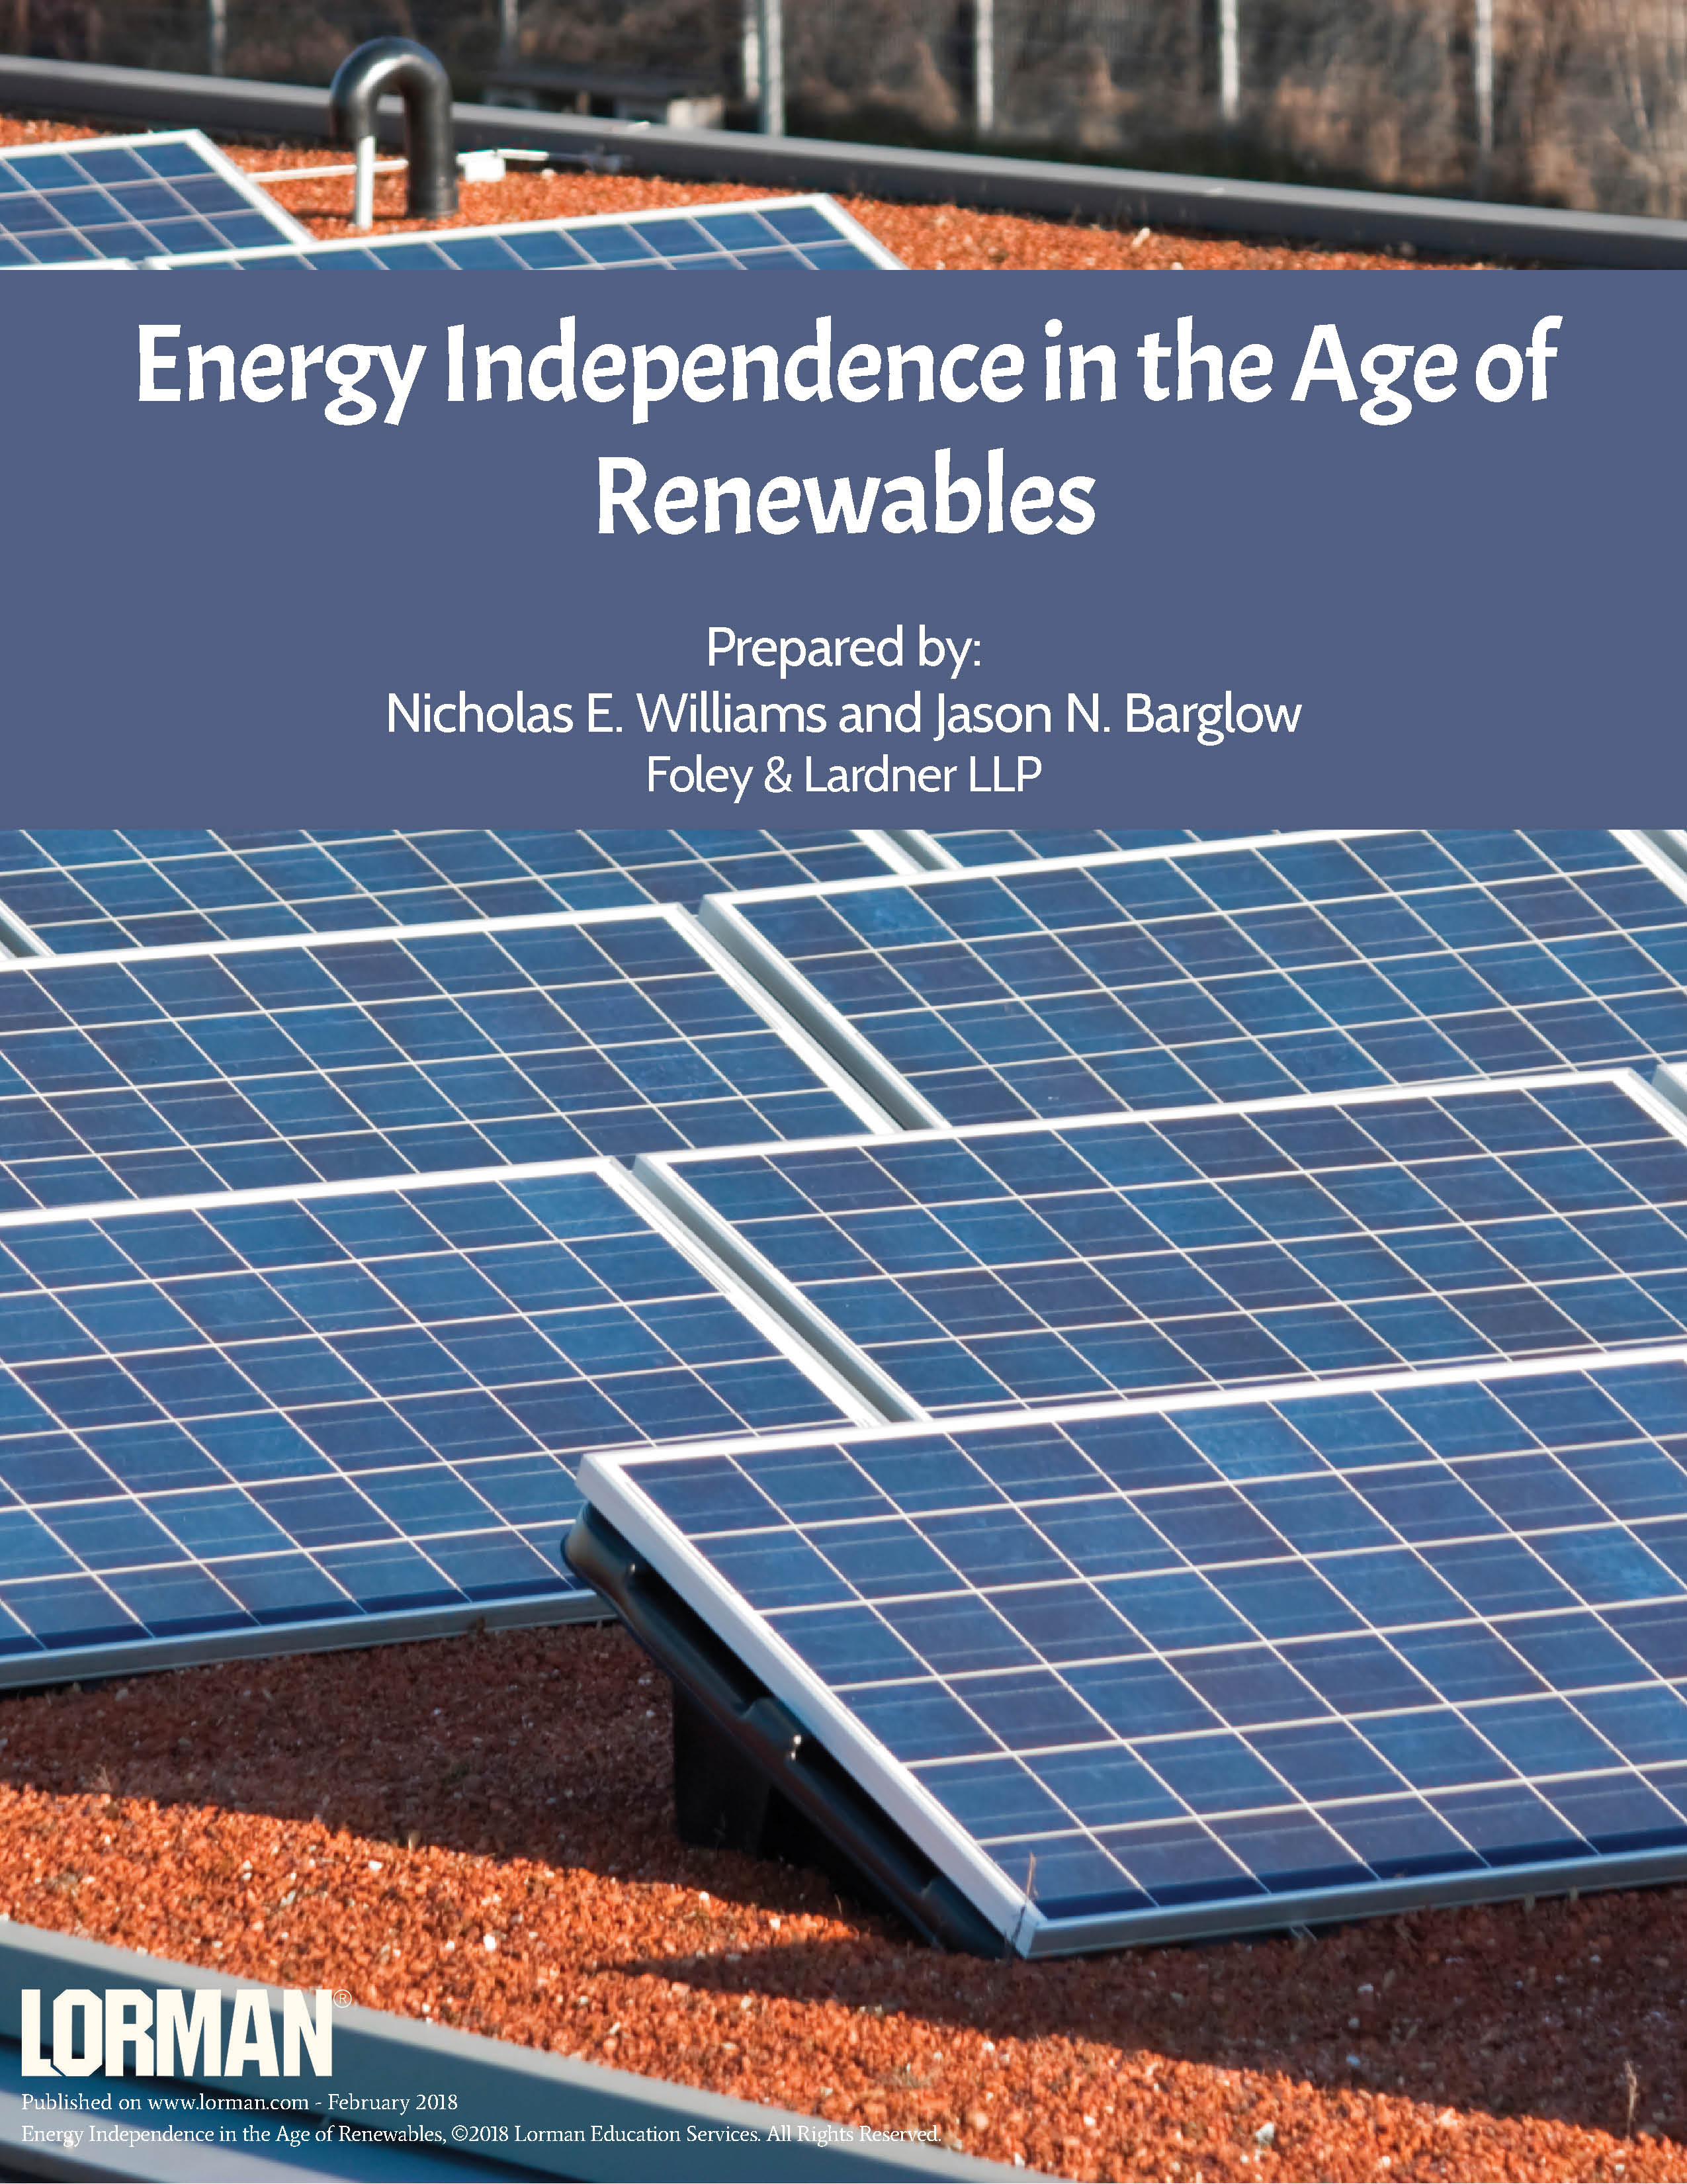 Energy Independence in the Age of Renewables